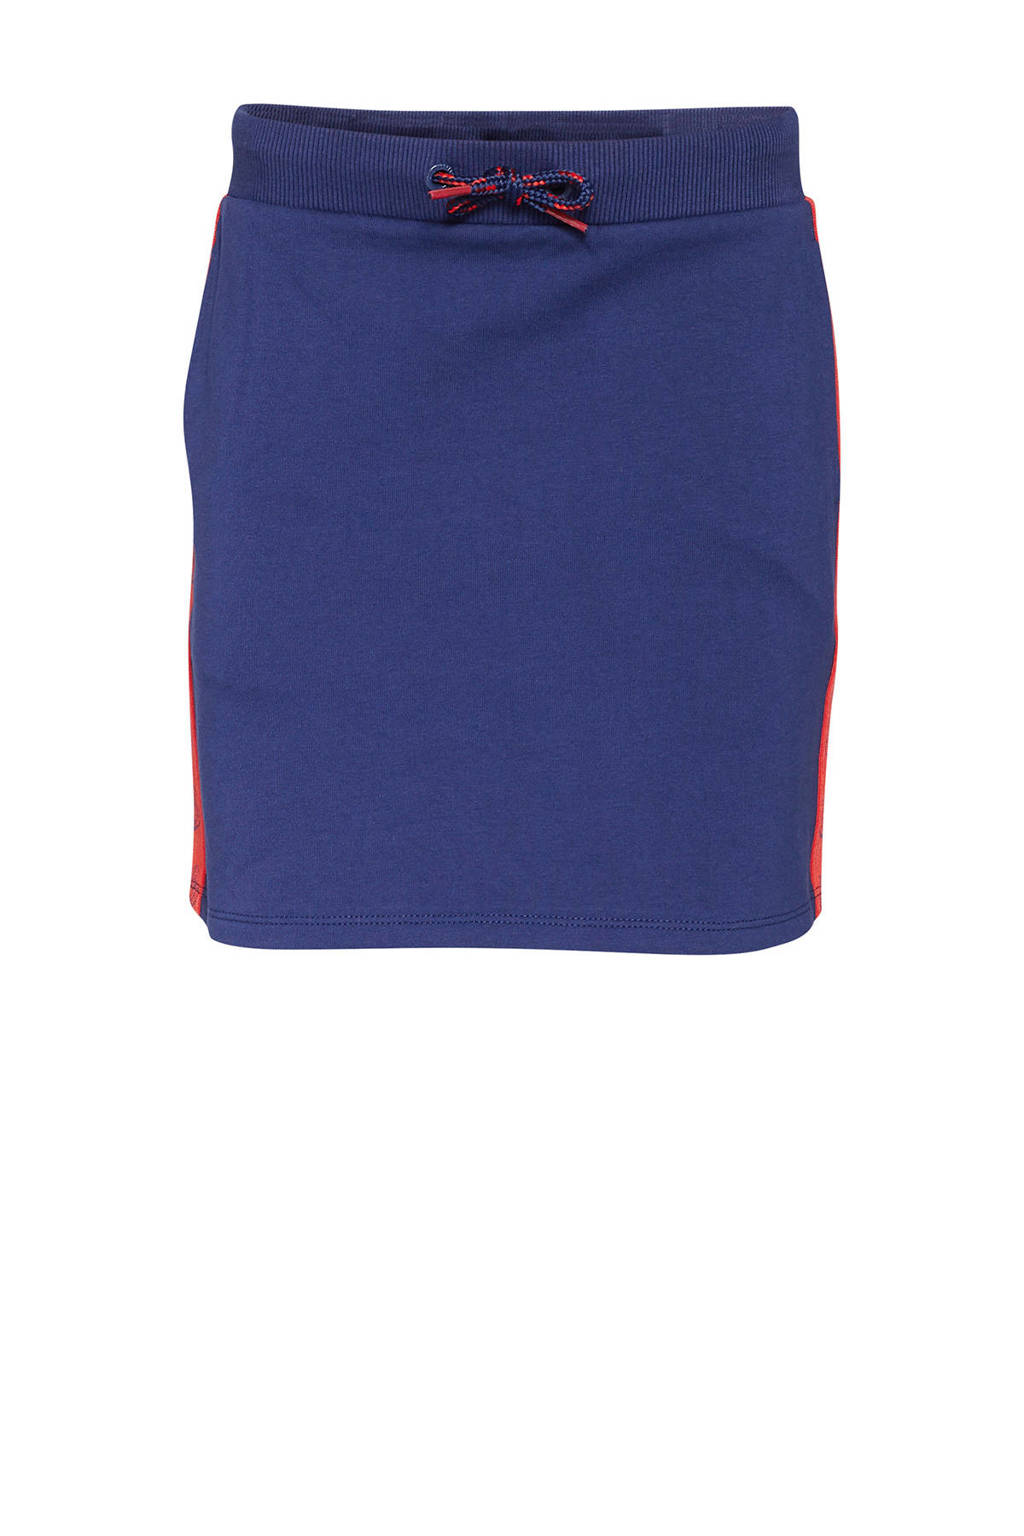 WE Fashion rok met contrastbies donkerblauw/rood, Donkerblauw/rood